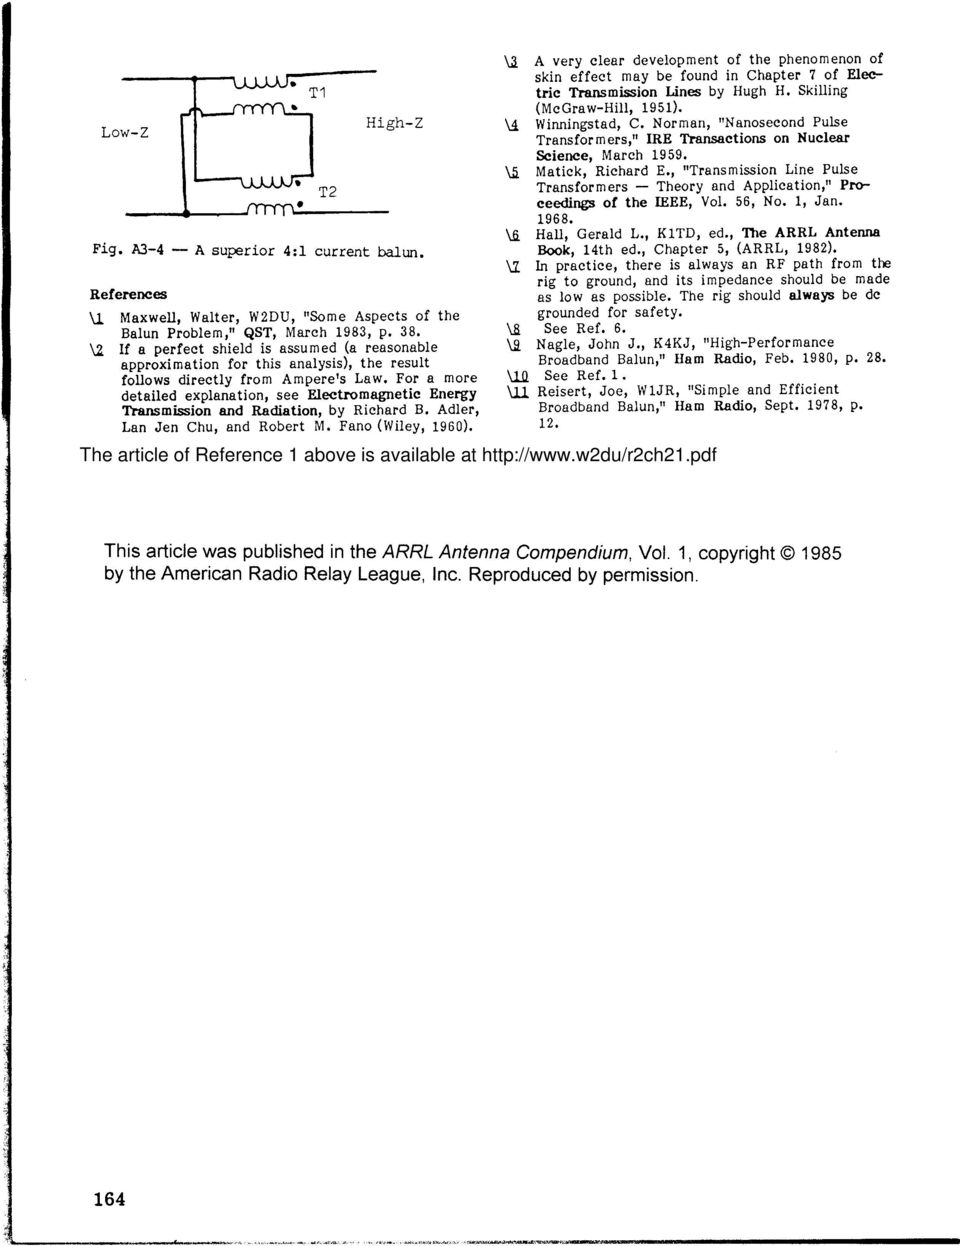 For a more detailed explanation, see Electromagnetic Energy Tlansmission and Radiation, by Richard B. Adler, Lan Jen Chu, and Robert M. Fano (Wiley, 1960).